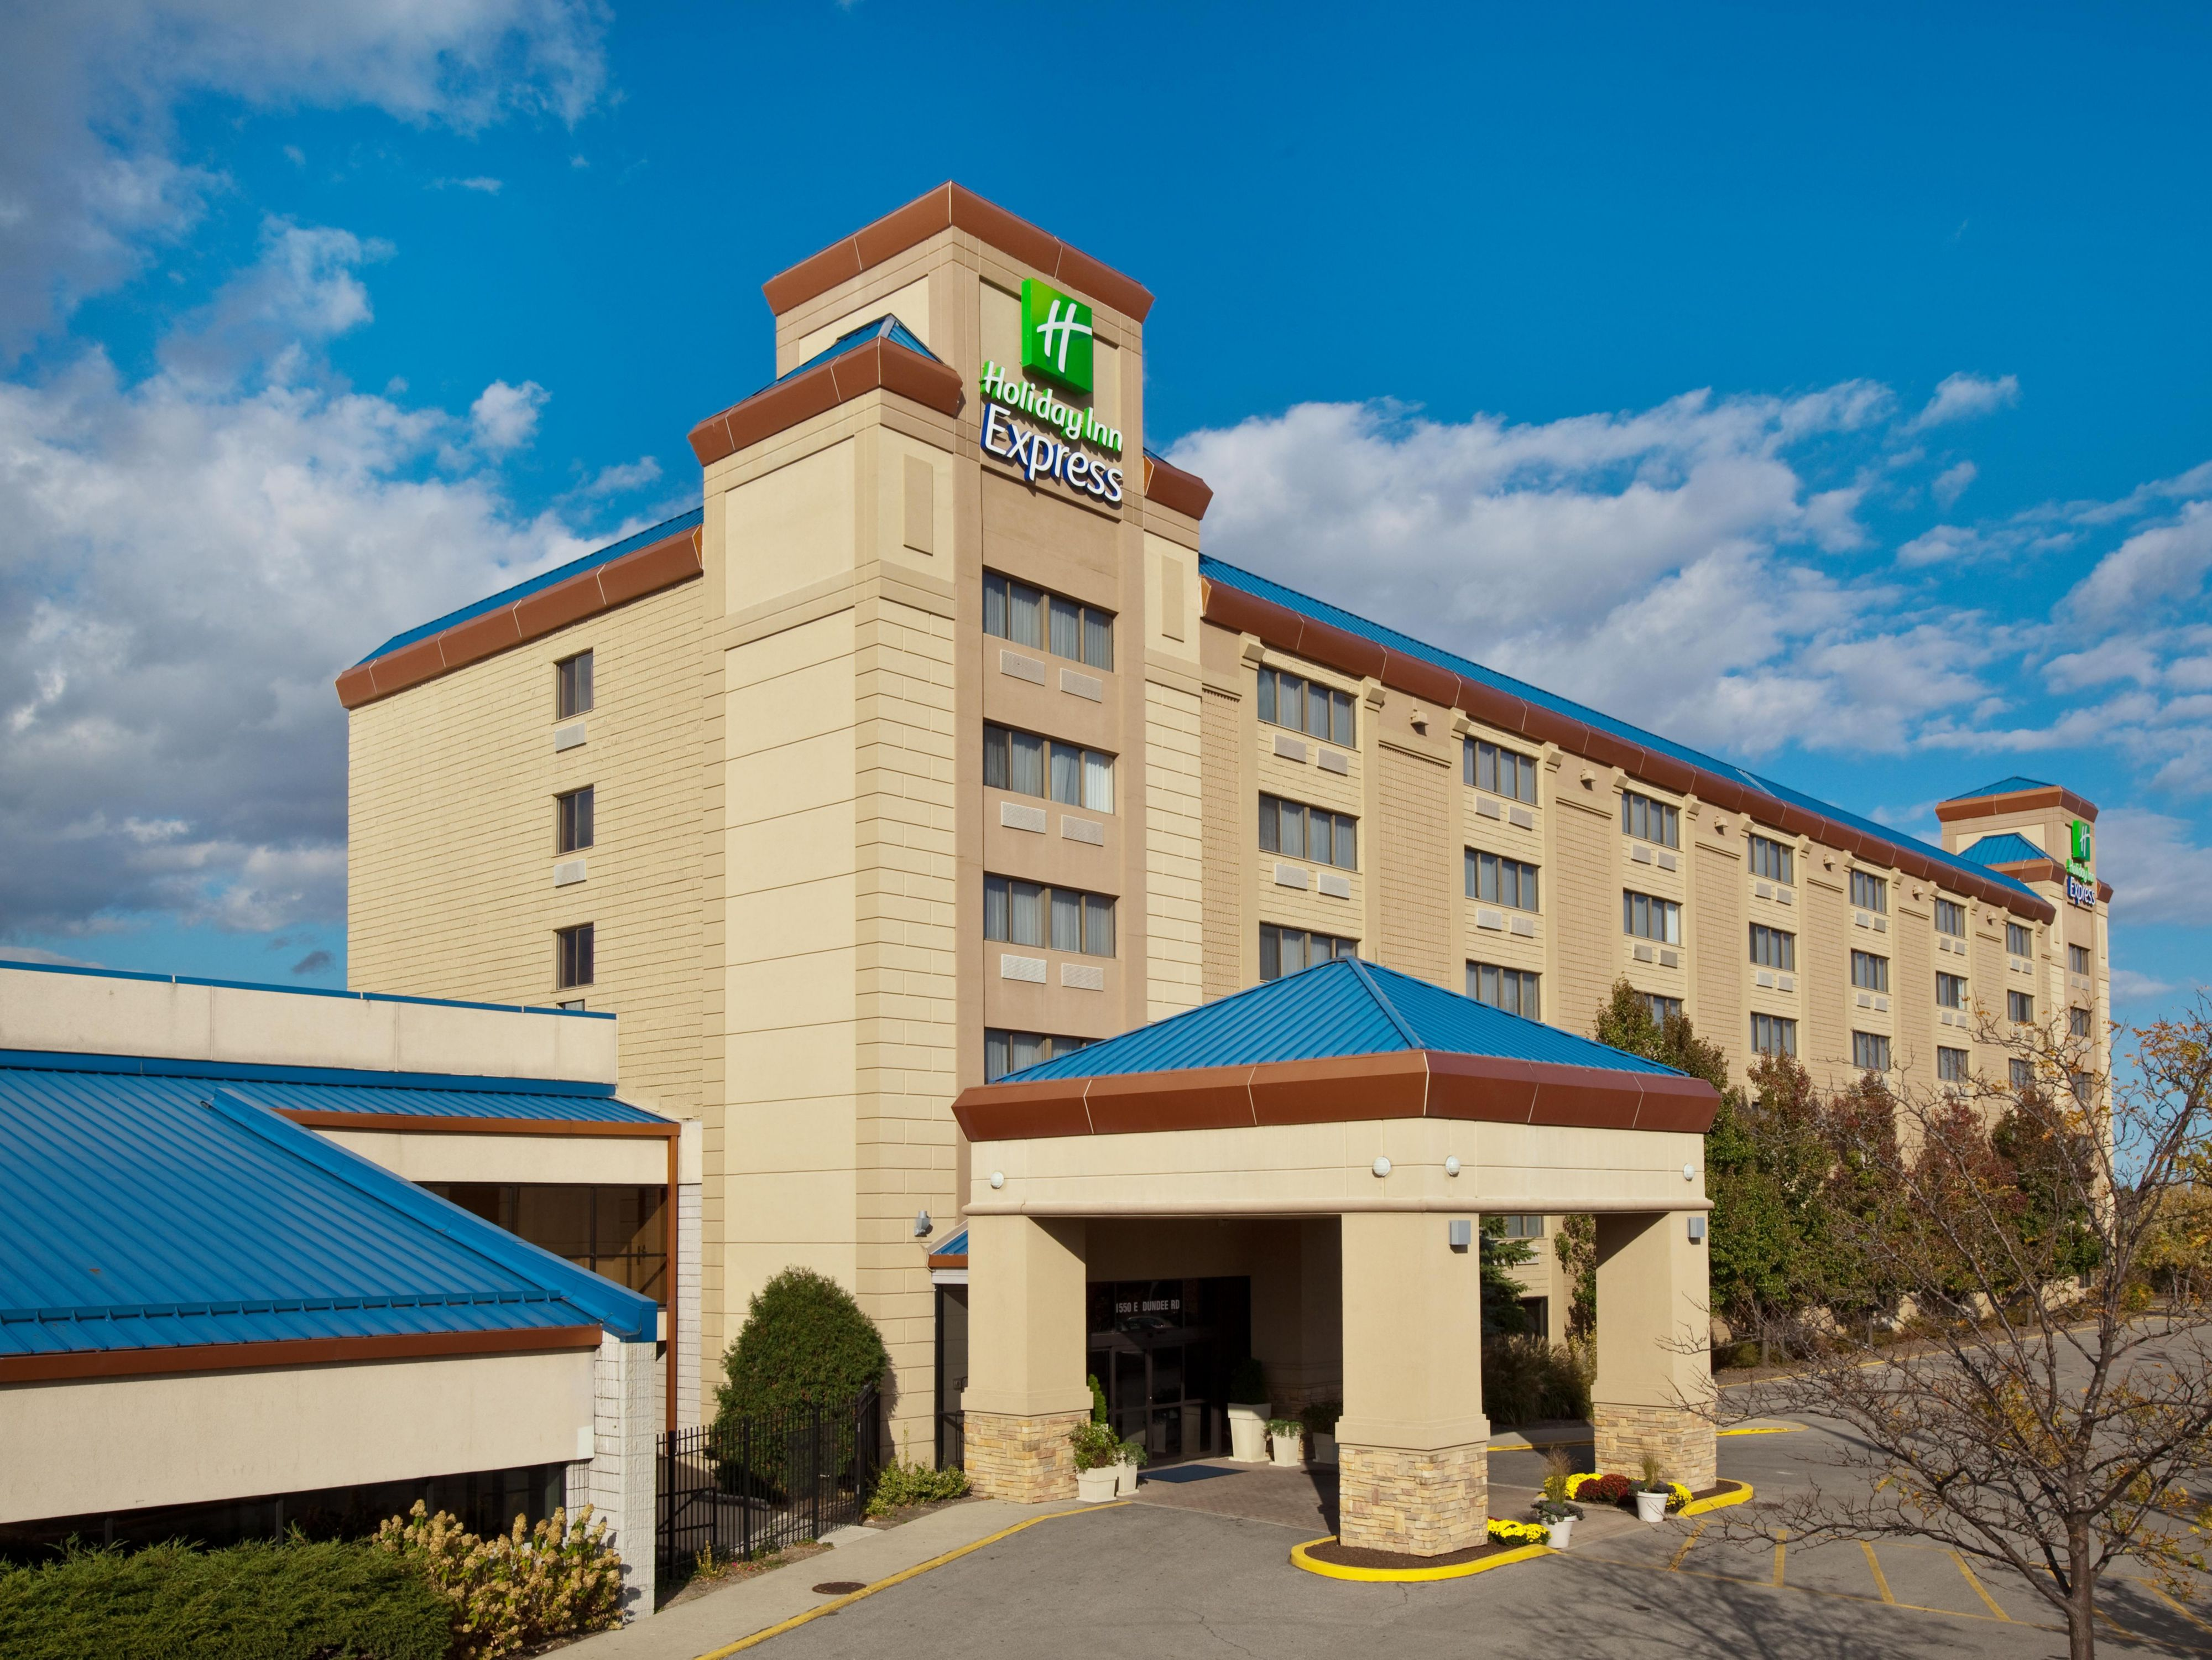 Holiday Inn Express Palatine-Arlington Hts. Chicago NW-hotel ext